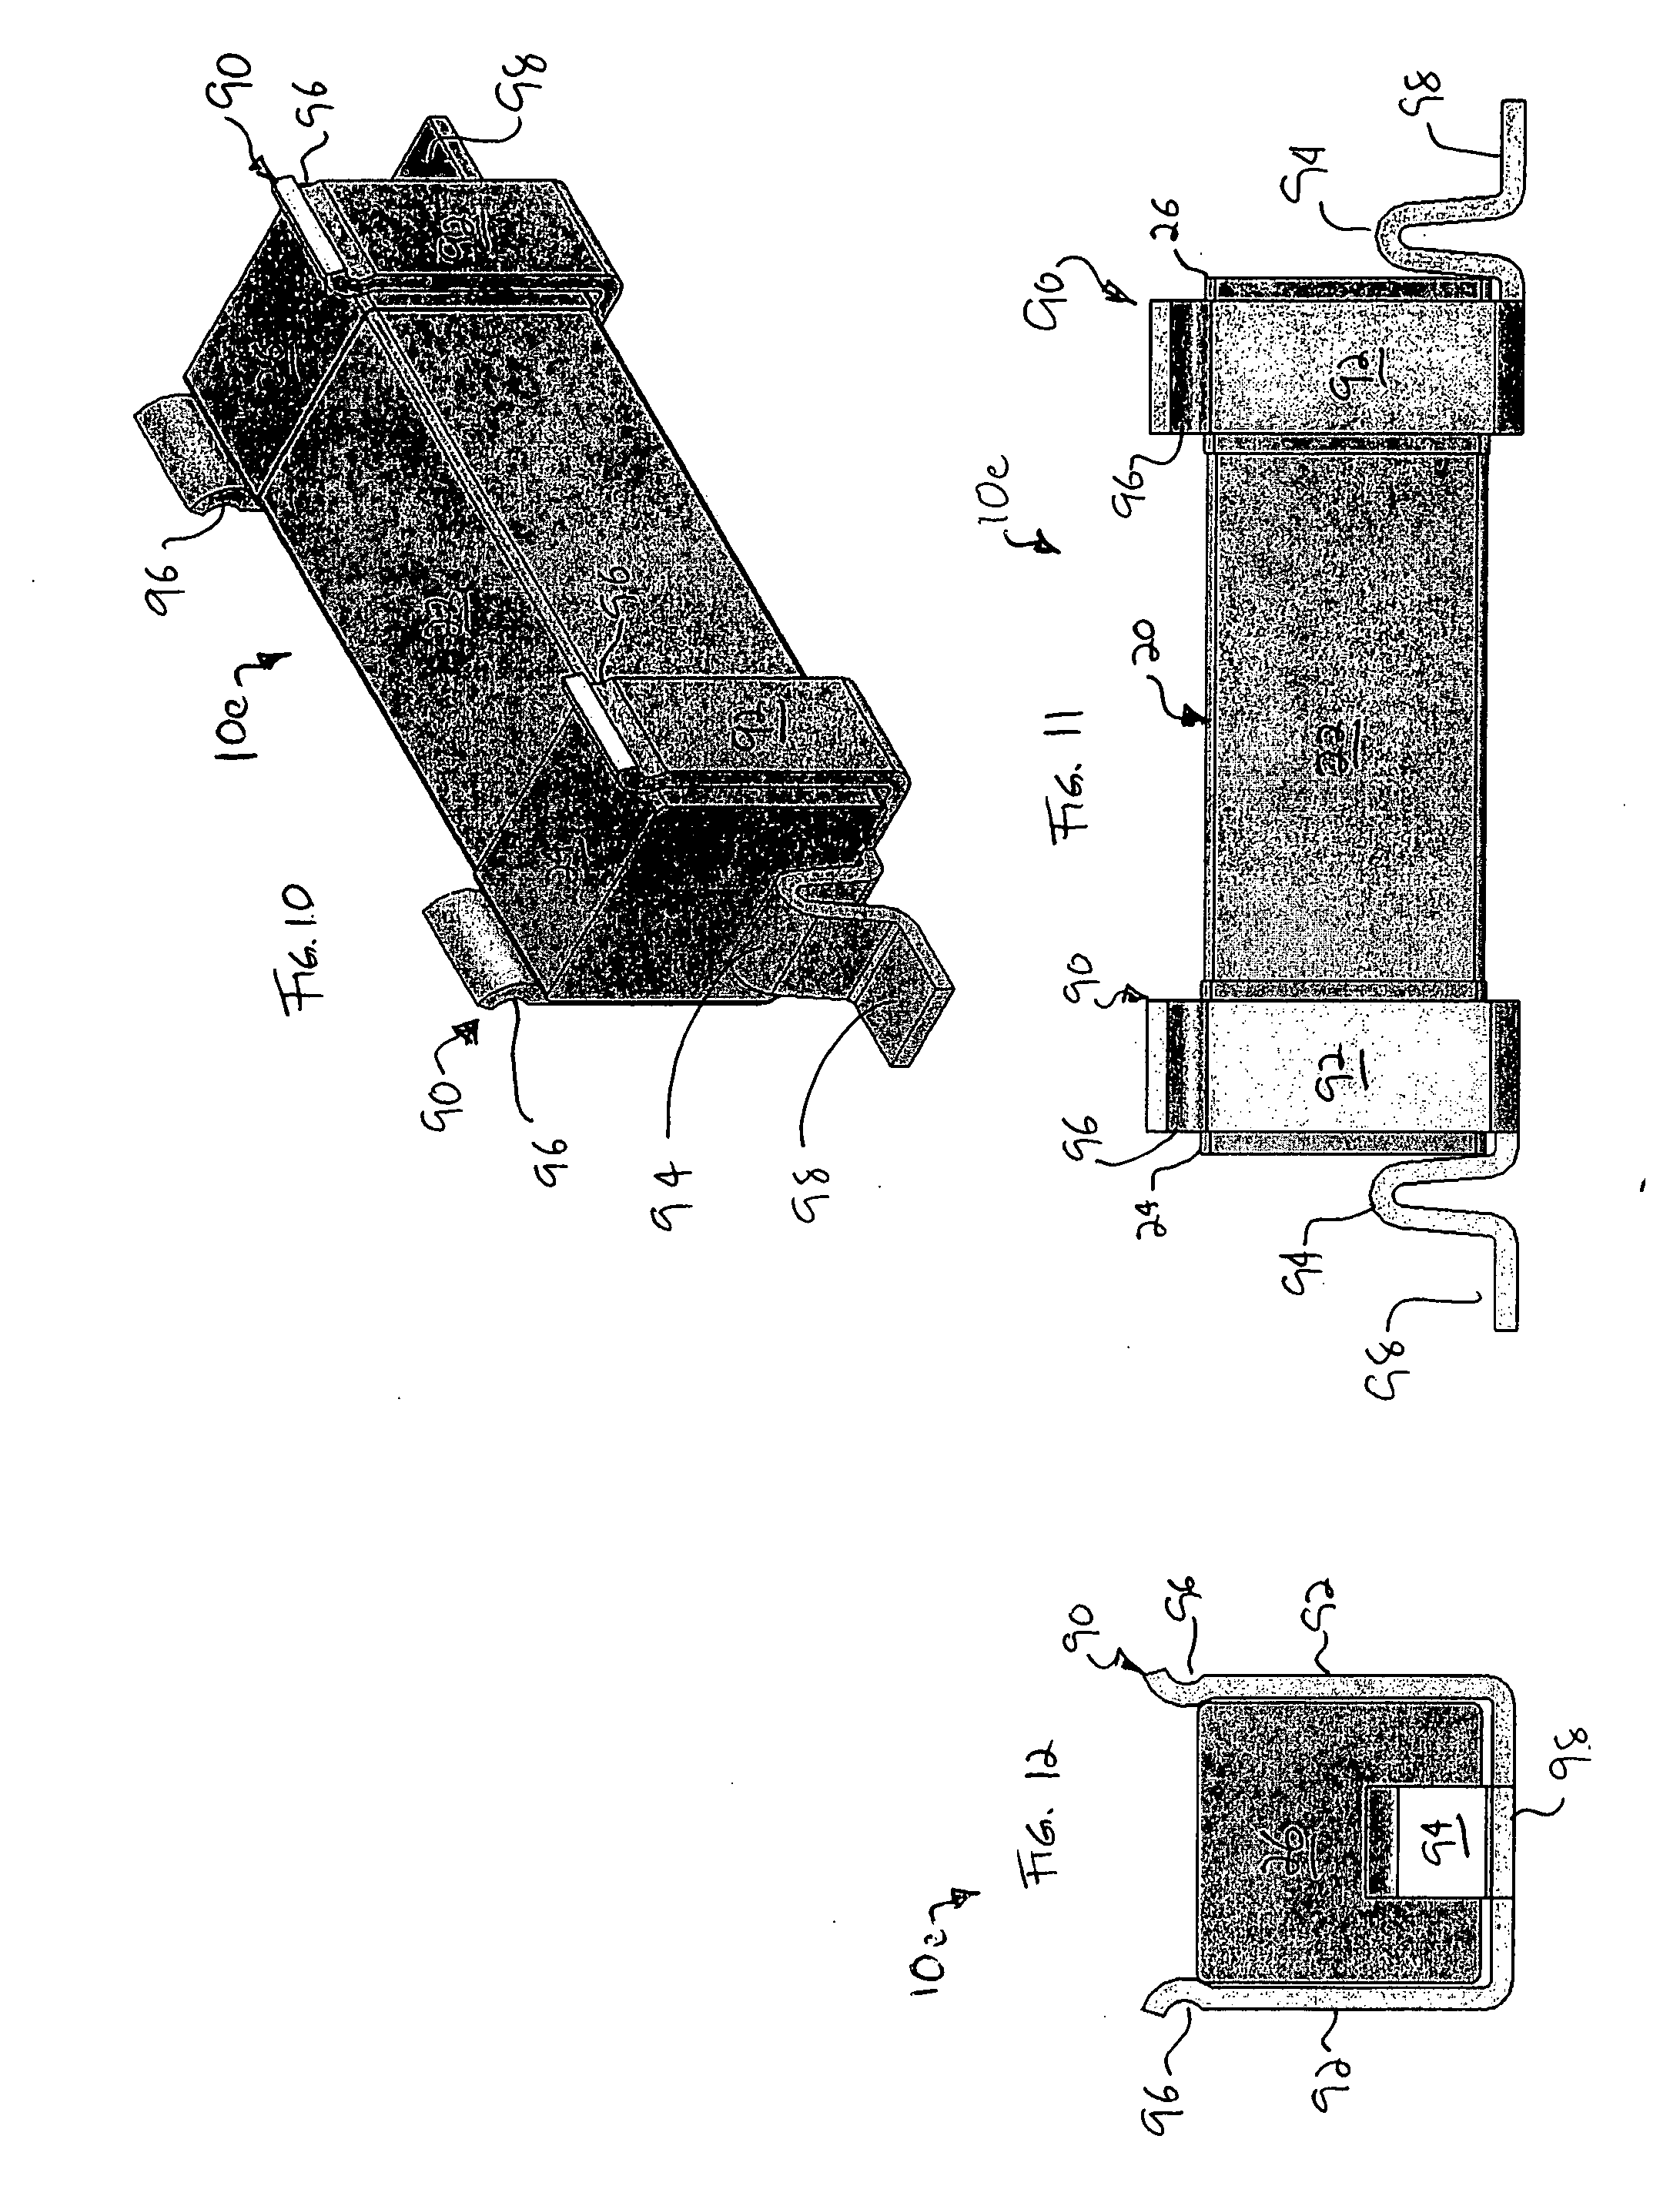 brevet us20060197647 - thermally decoupling fuse holder and assembly